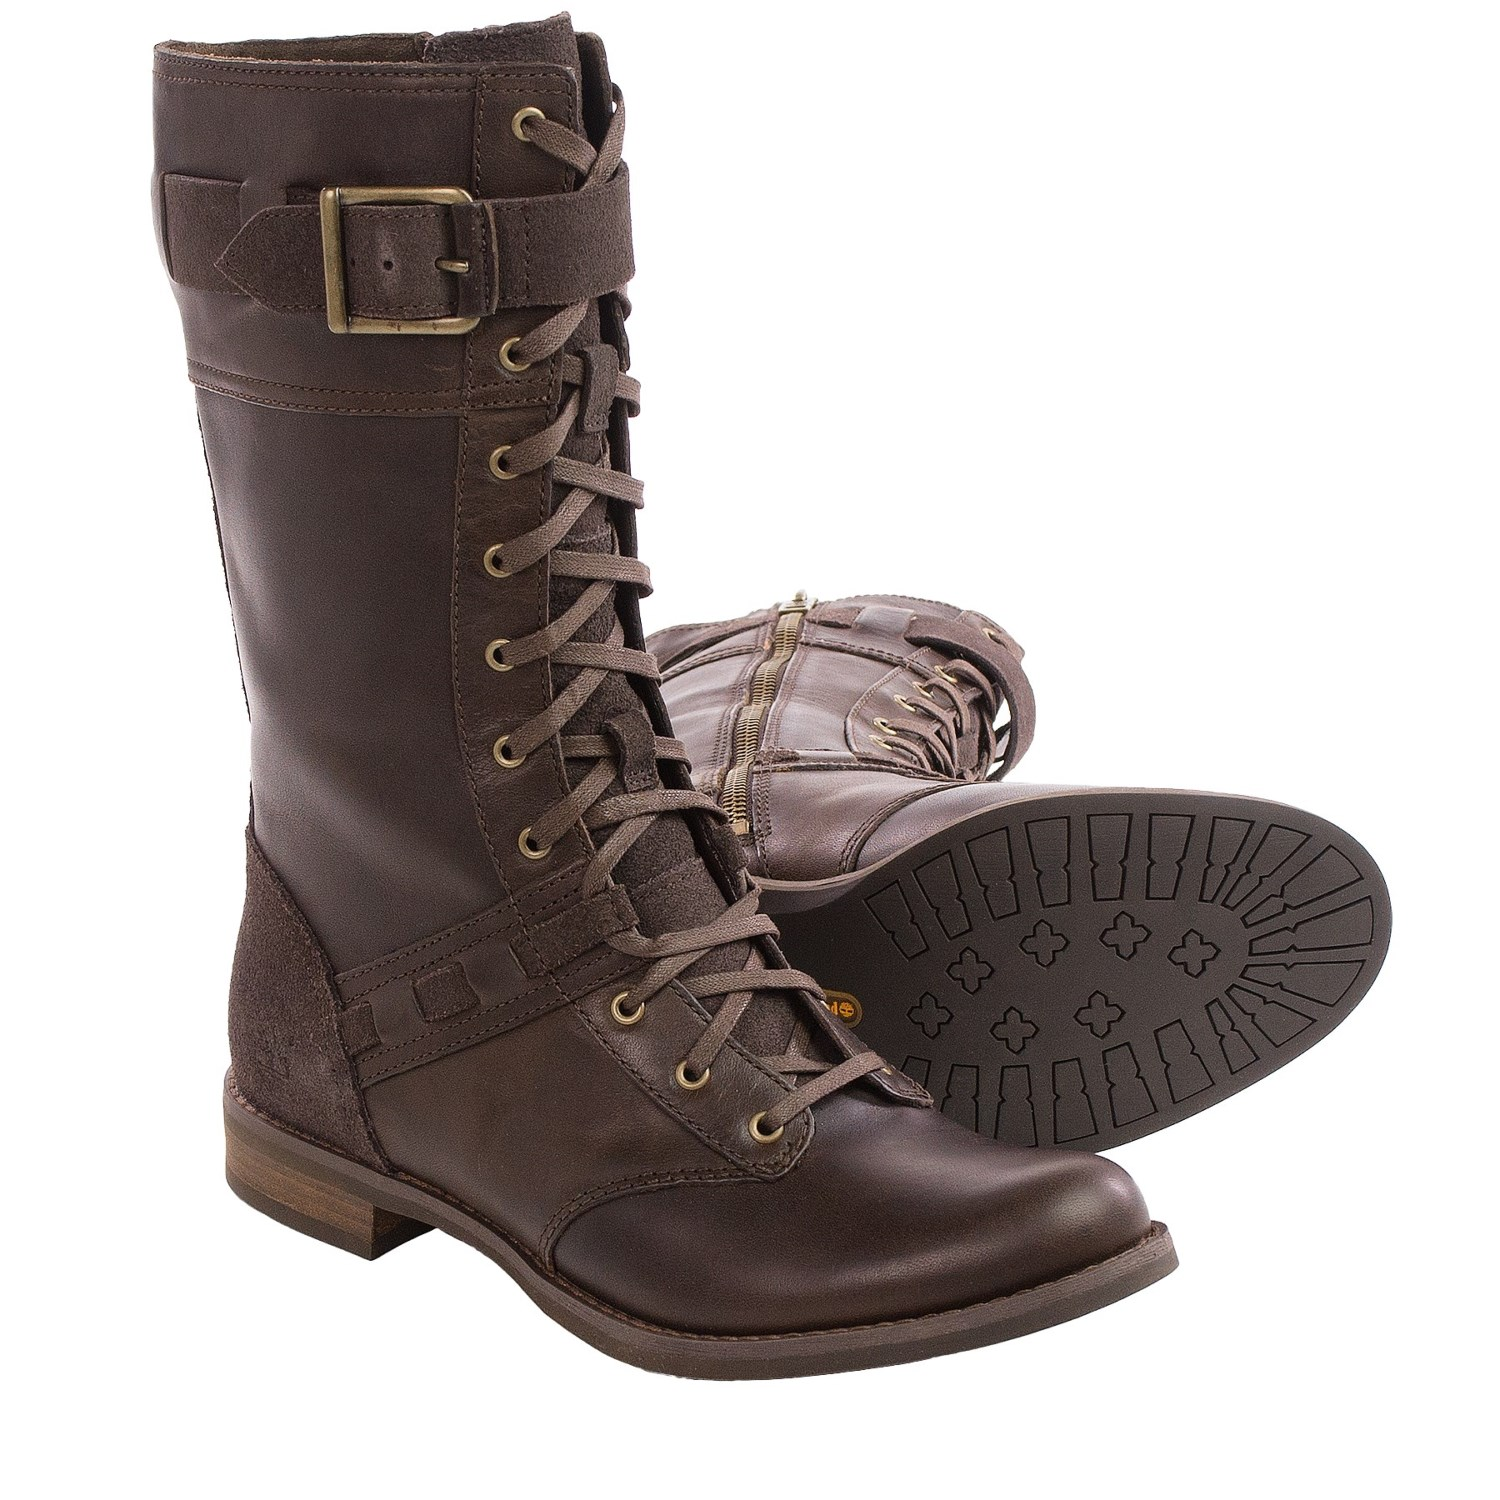 Original Timberland Womenu0026#39;s Savin Hill Tall Boots Review - $240 - BestLeather.org